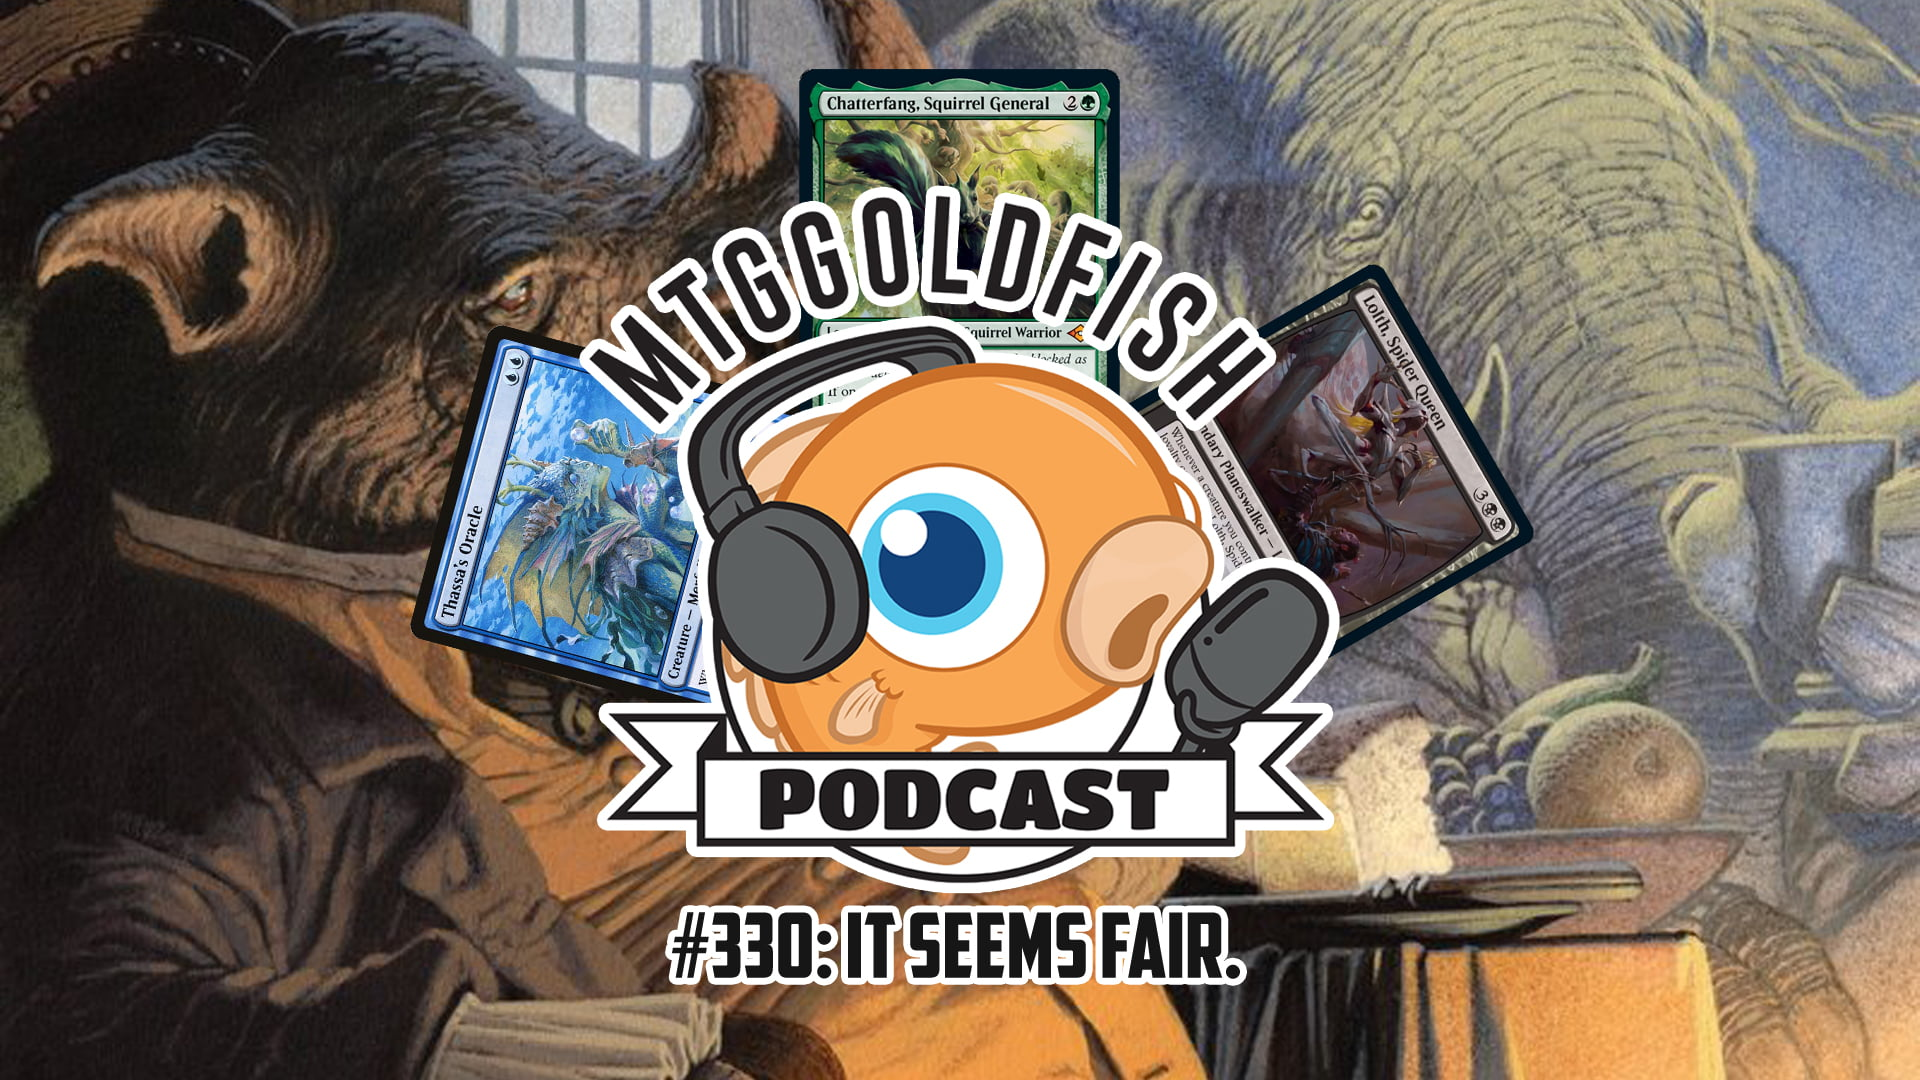 Image for Podcast 330: It Seems Fair